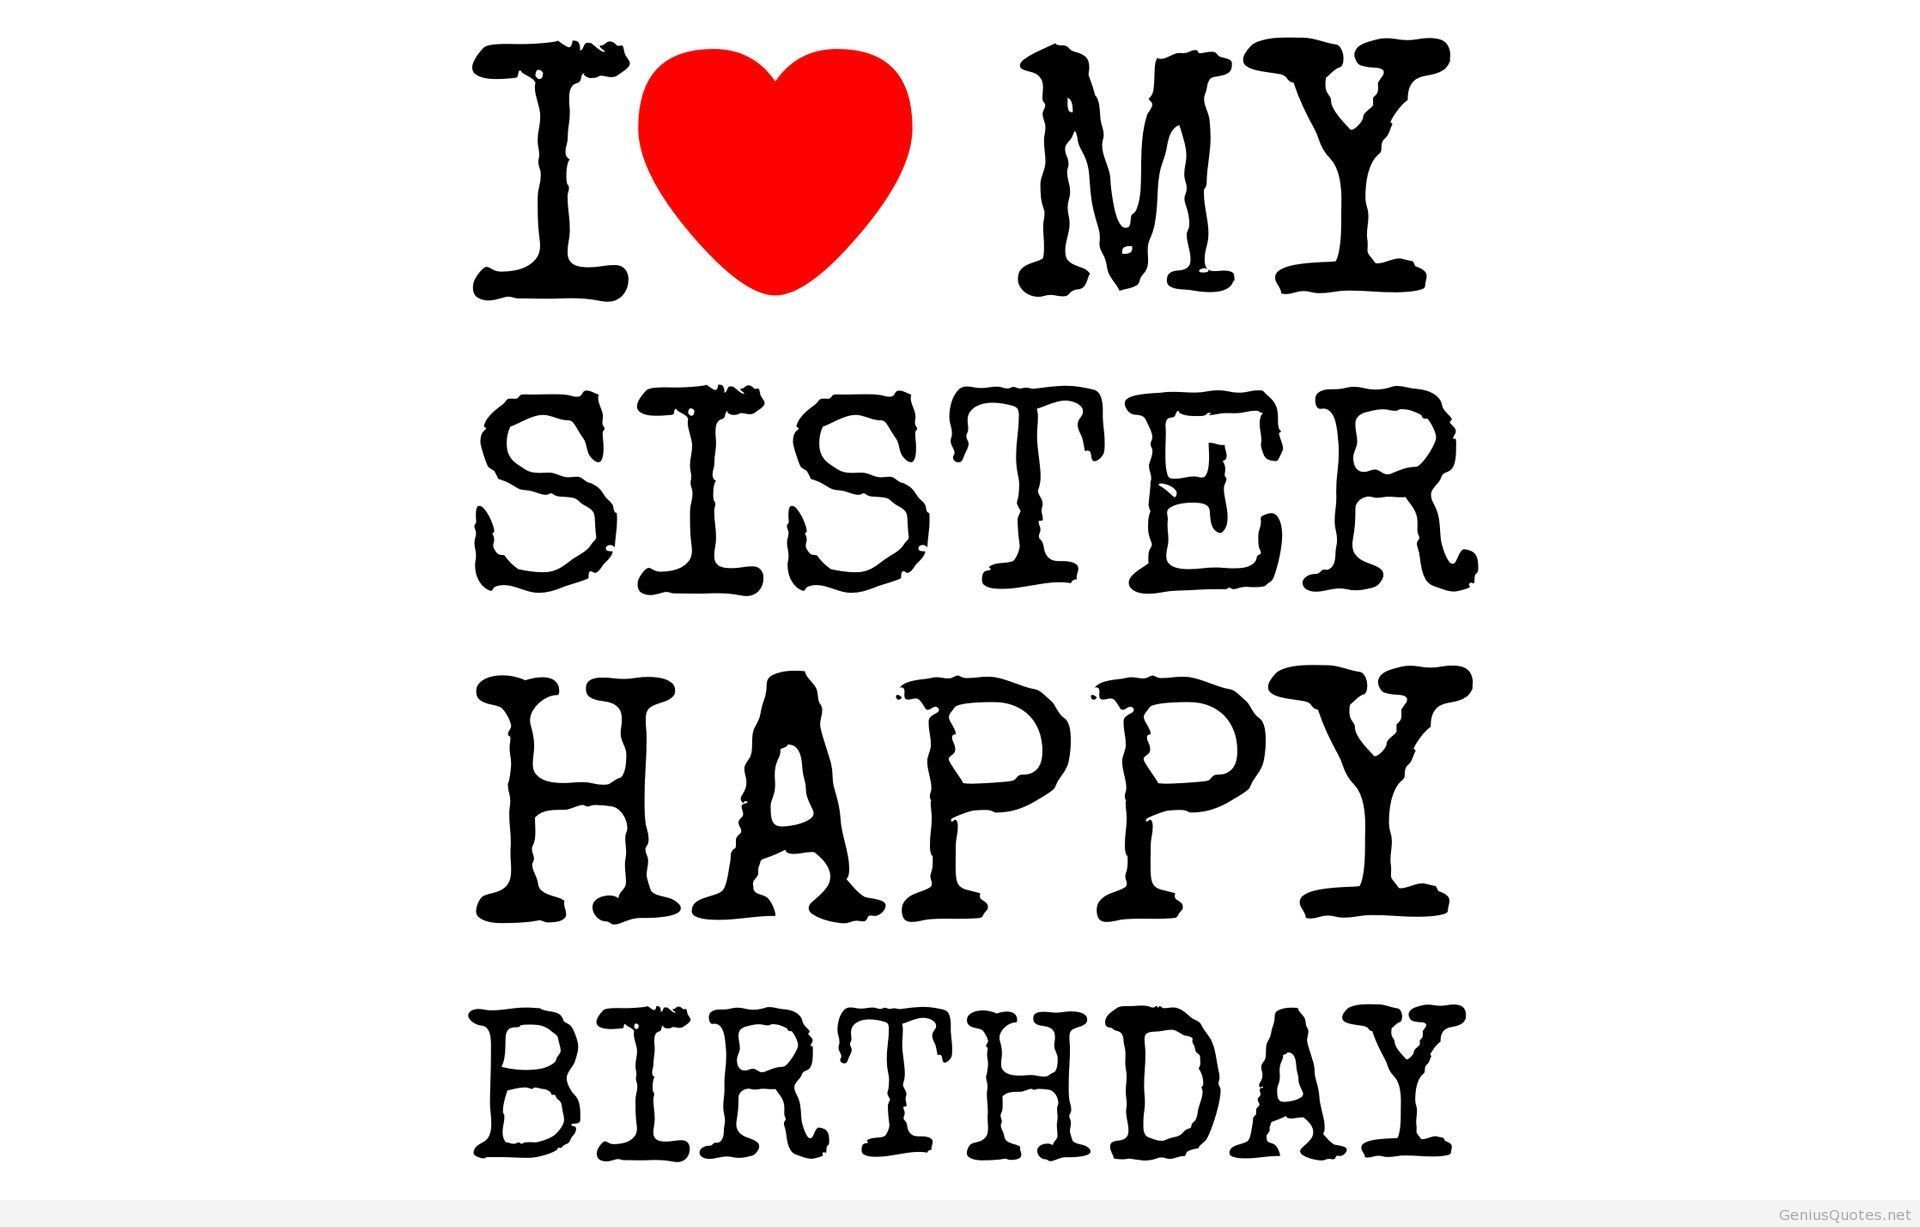 Download Happy Birthday Brother Images, Pictures, Photos for .